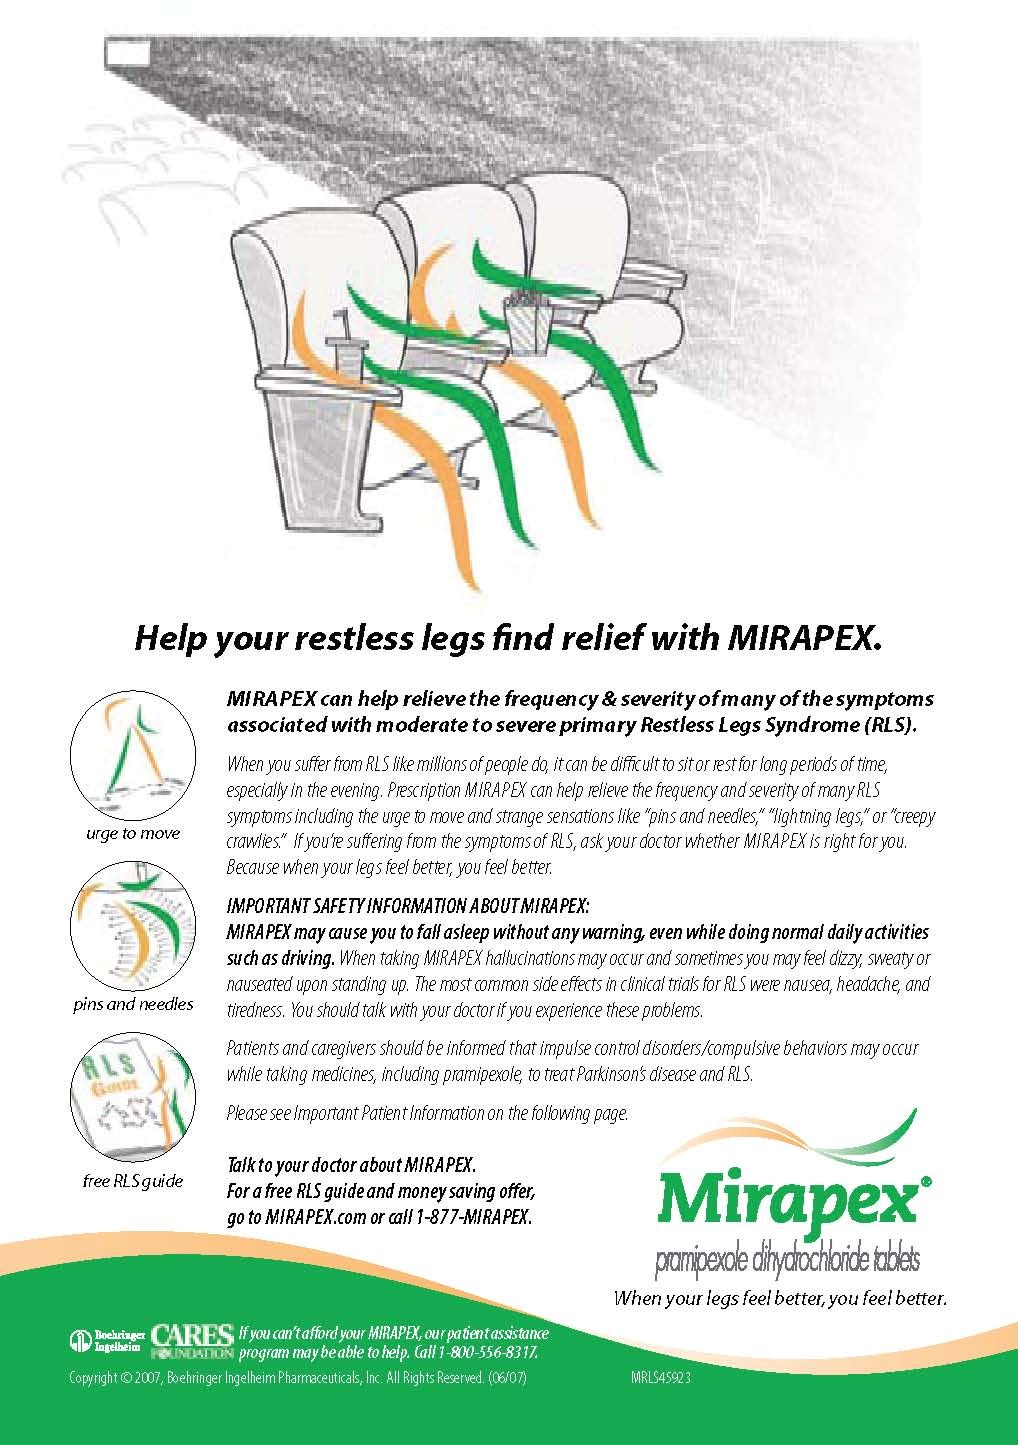 Mirapex campaign gets kick from research